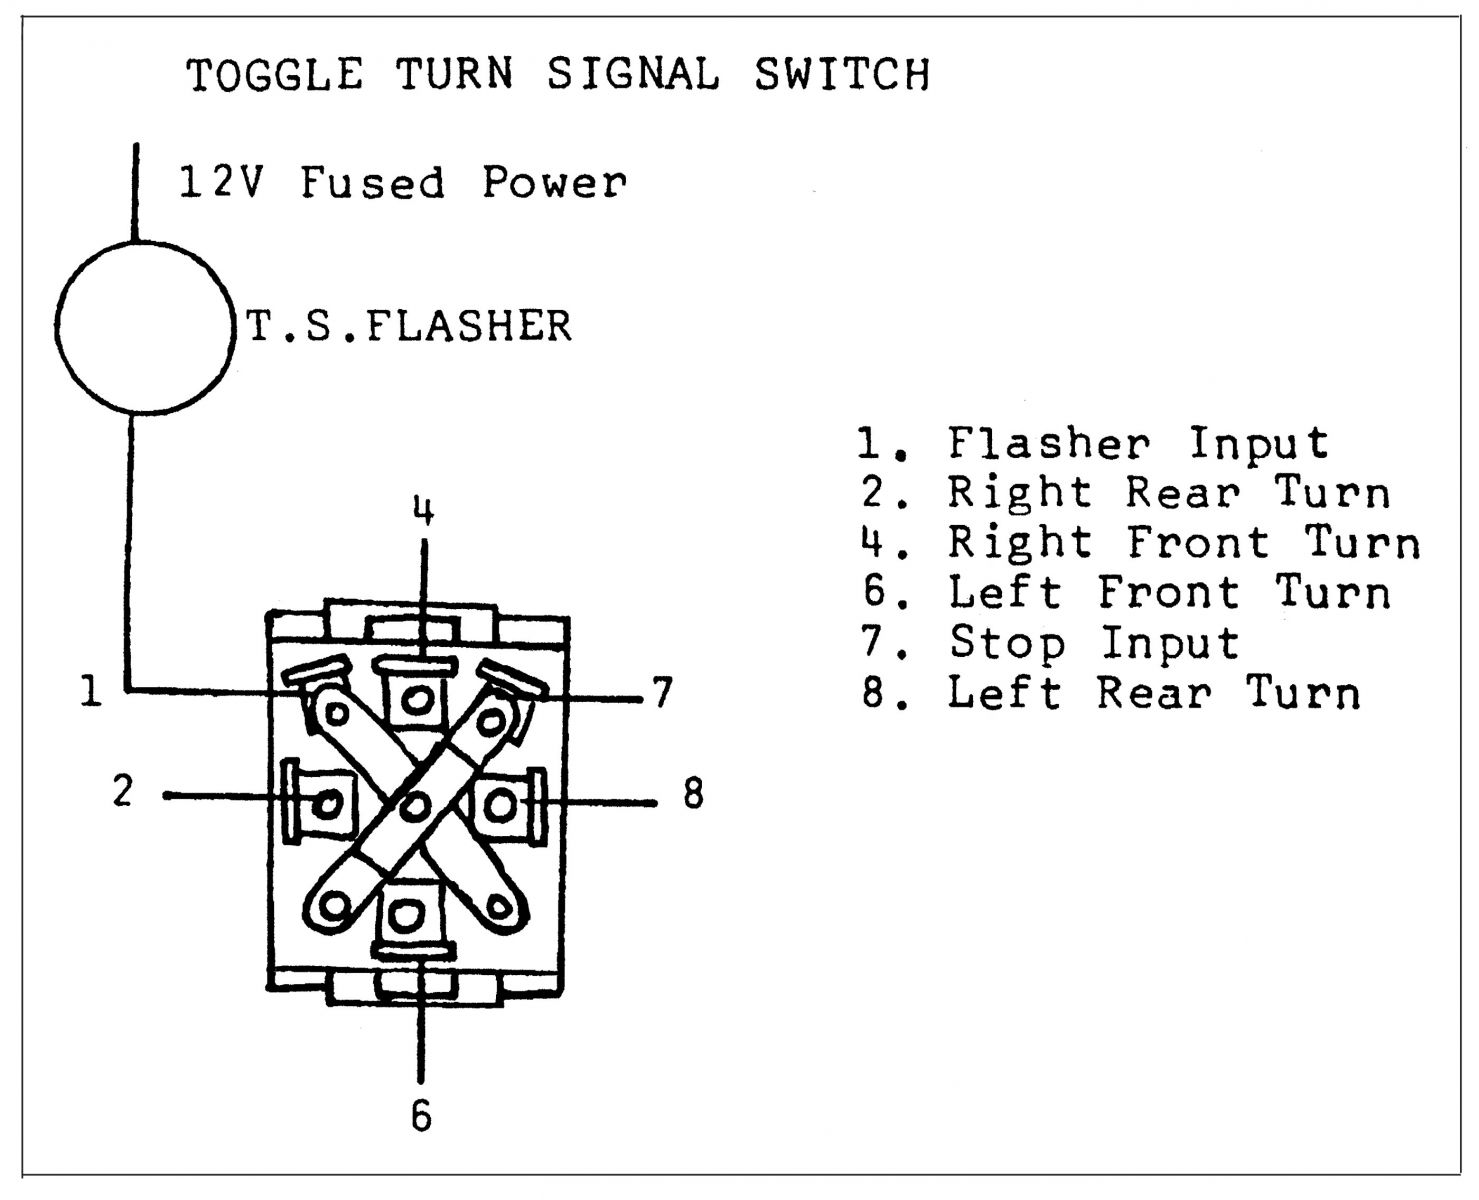 6 Wire Turn Signal Switch Wiring Schematic Detailed Schematics Diagram Scooter Signals For Early Hot Rods Hotrod Hotline Aftermarket